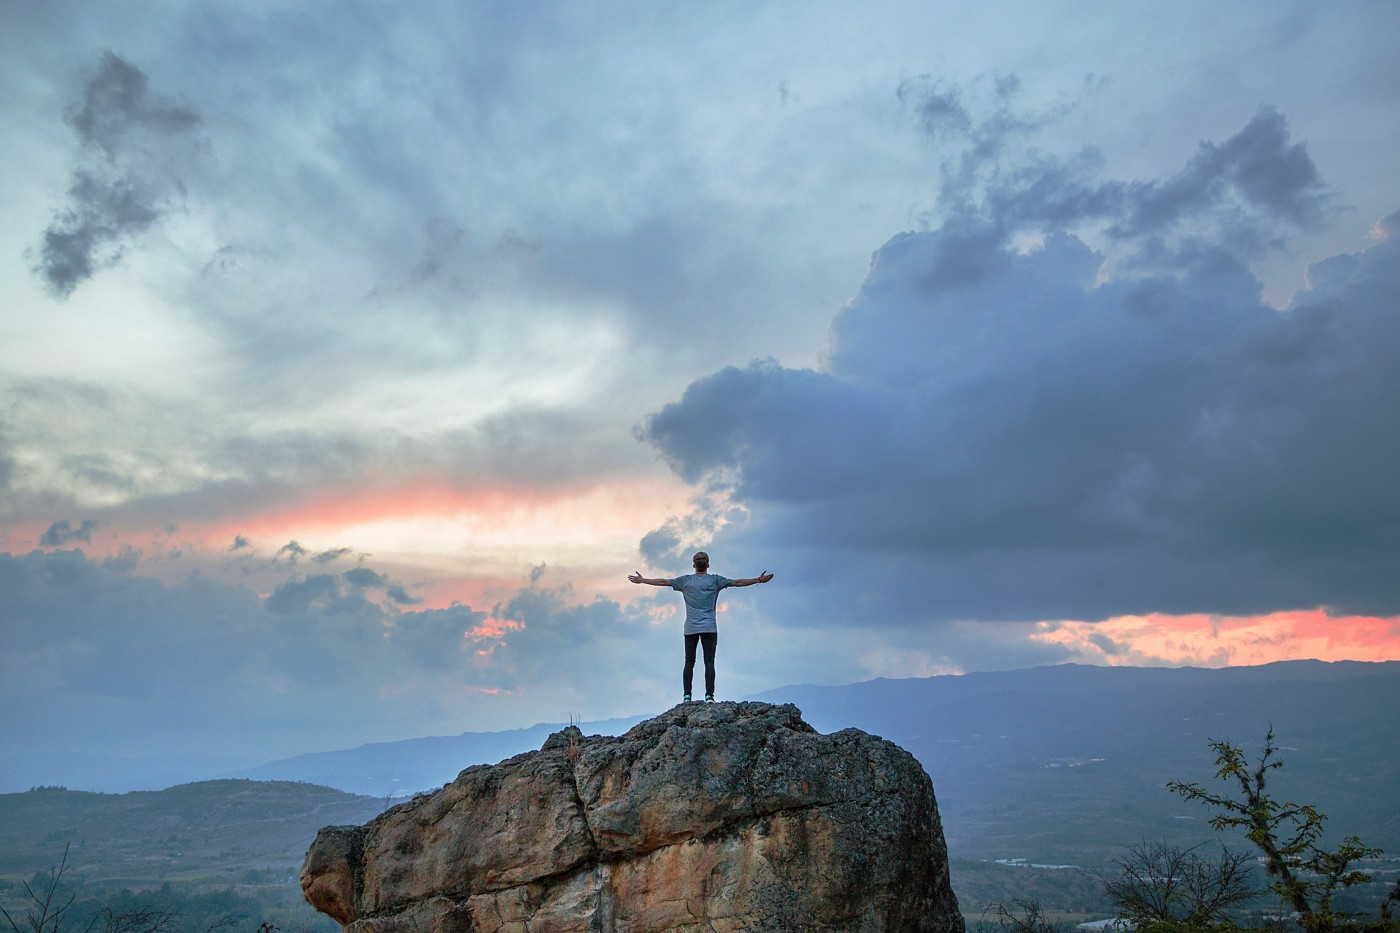 A man stands on a large rock with his hands spread eagle in front of the wide open skies and mountains